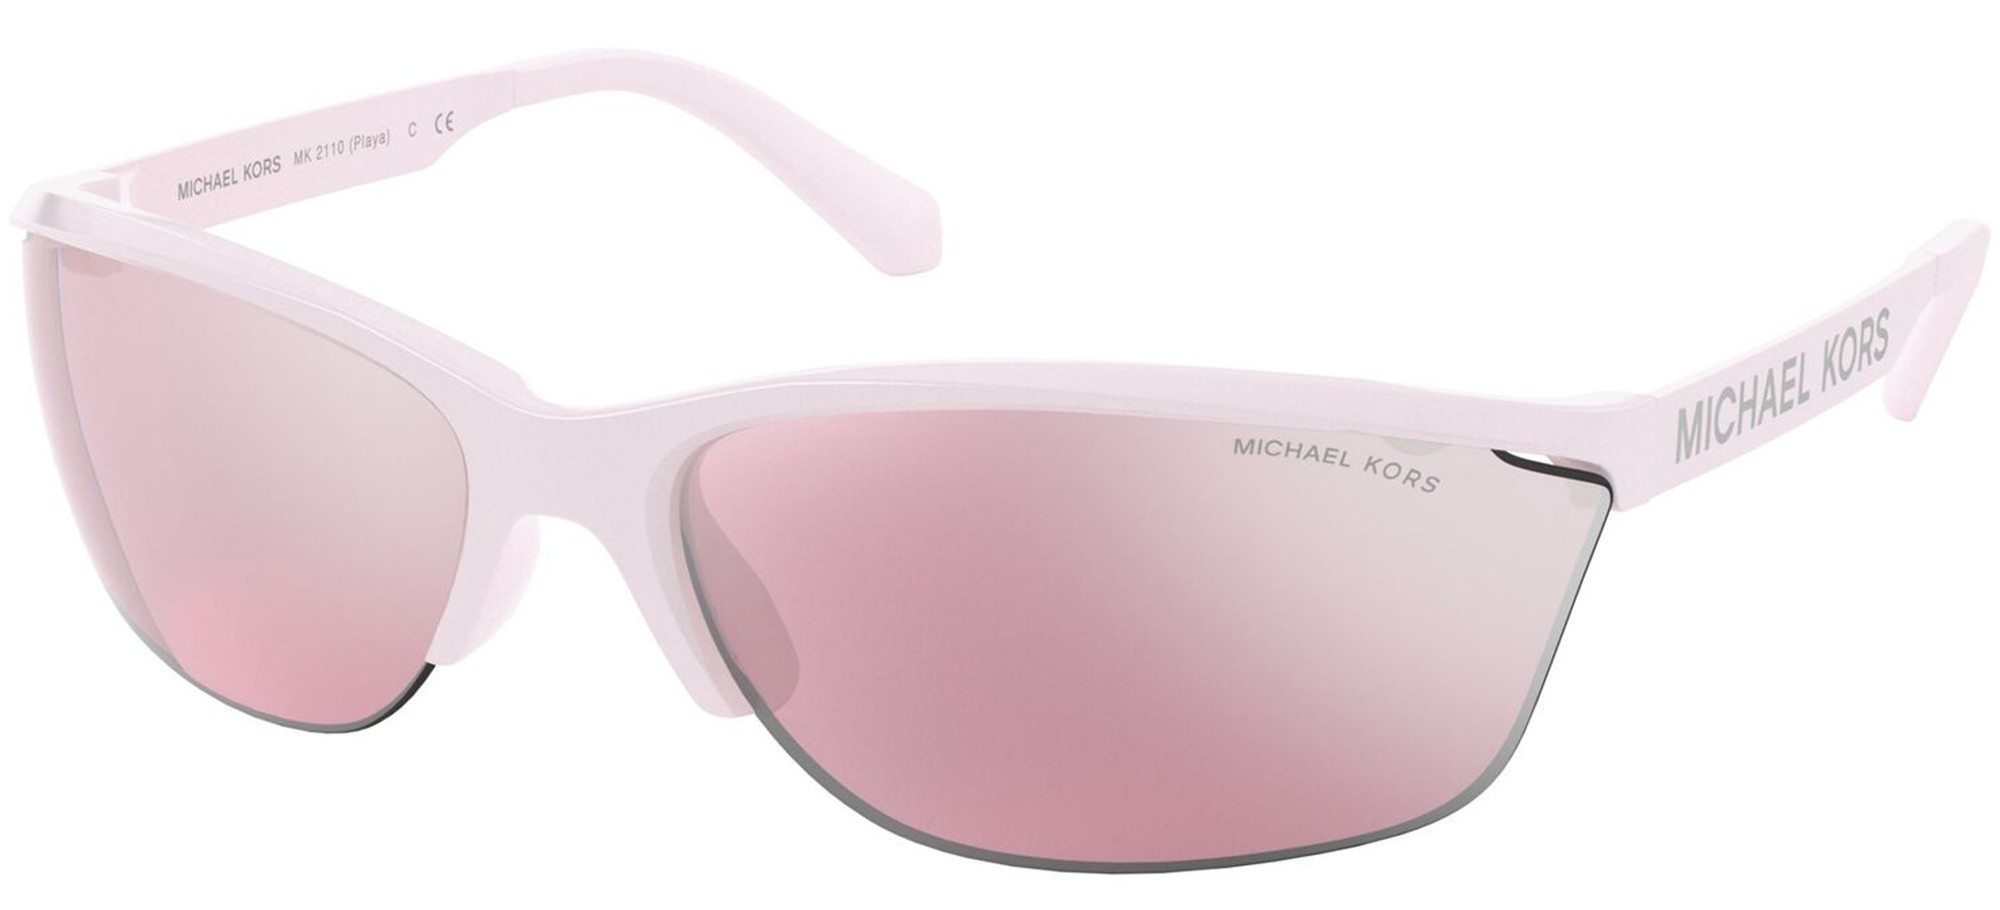 Michael Kors sunglasses PLAYA MK 2110